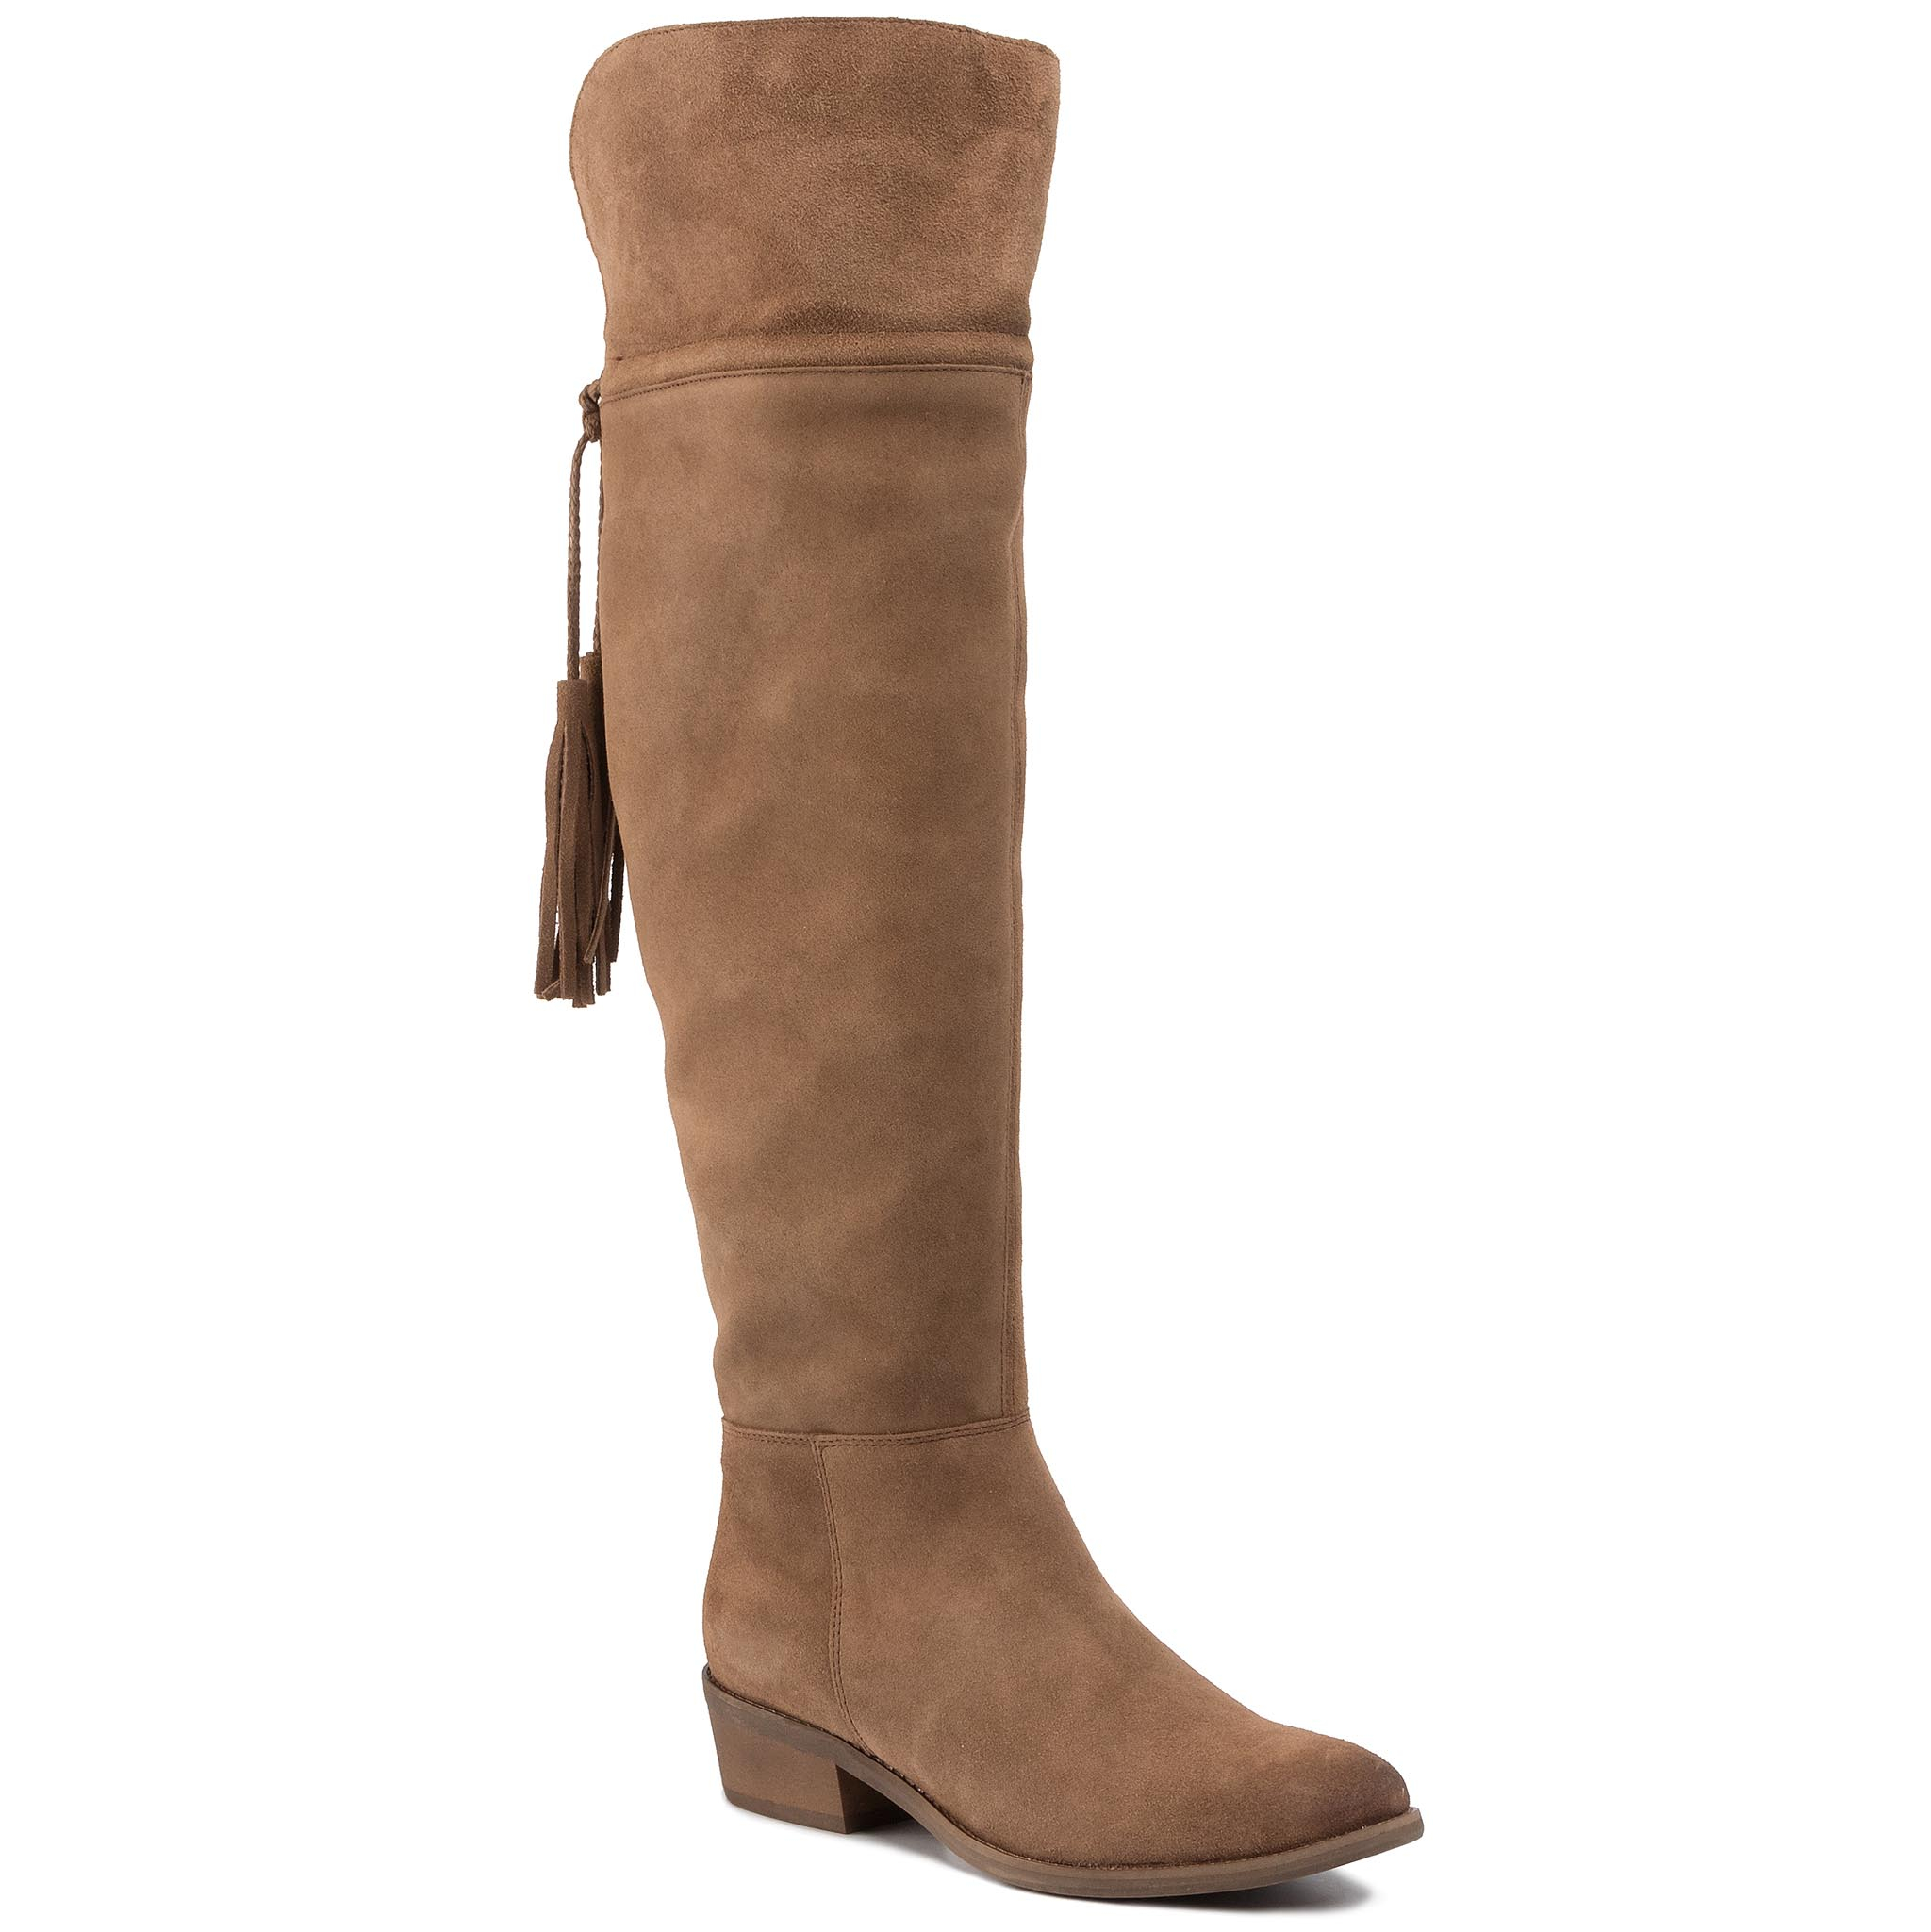 Cuissardes GINO ROSSI - 71312-04 Camel